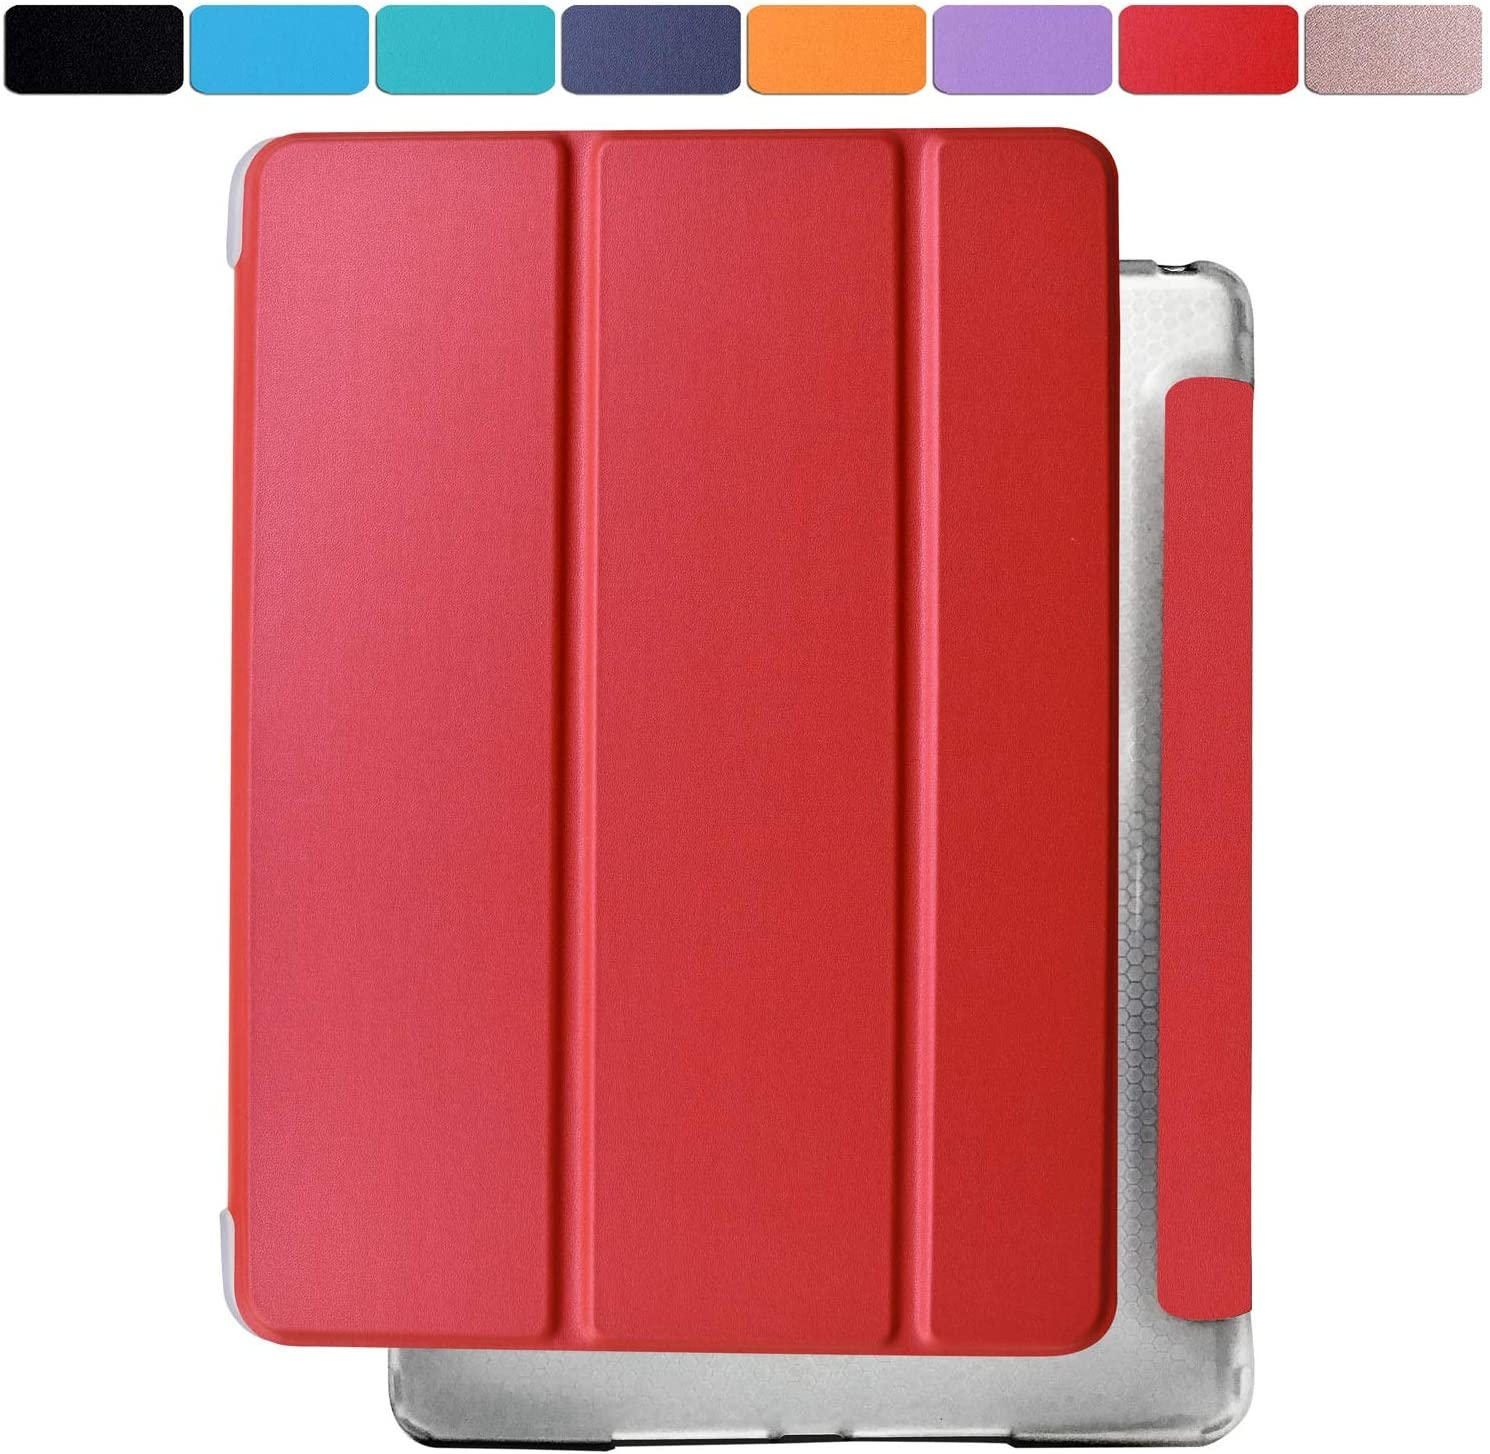 DuraSafe Cases for iPad PRO 10.5 Inch 2017 Air 10.5 3rd Generation 2019 [ Air 3 ] Shock Proof Magnetic Dual Angle Stand with Honeycomb Pattern Clear Back Cover - Red